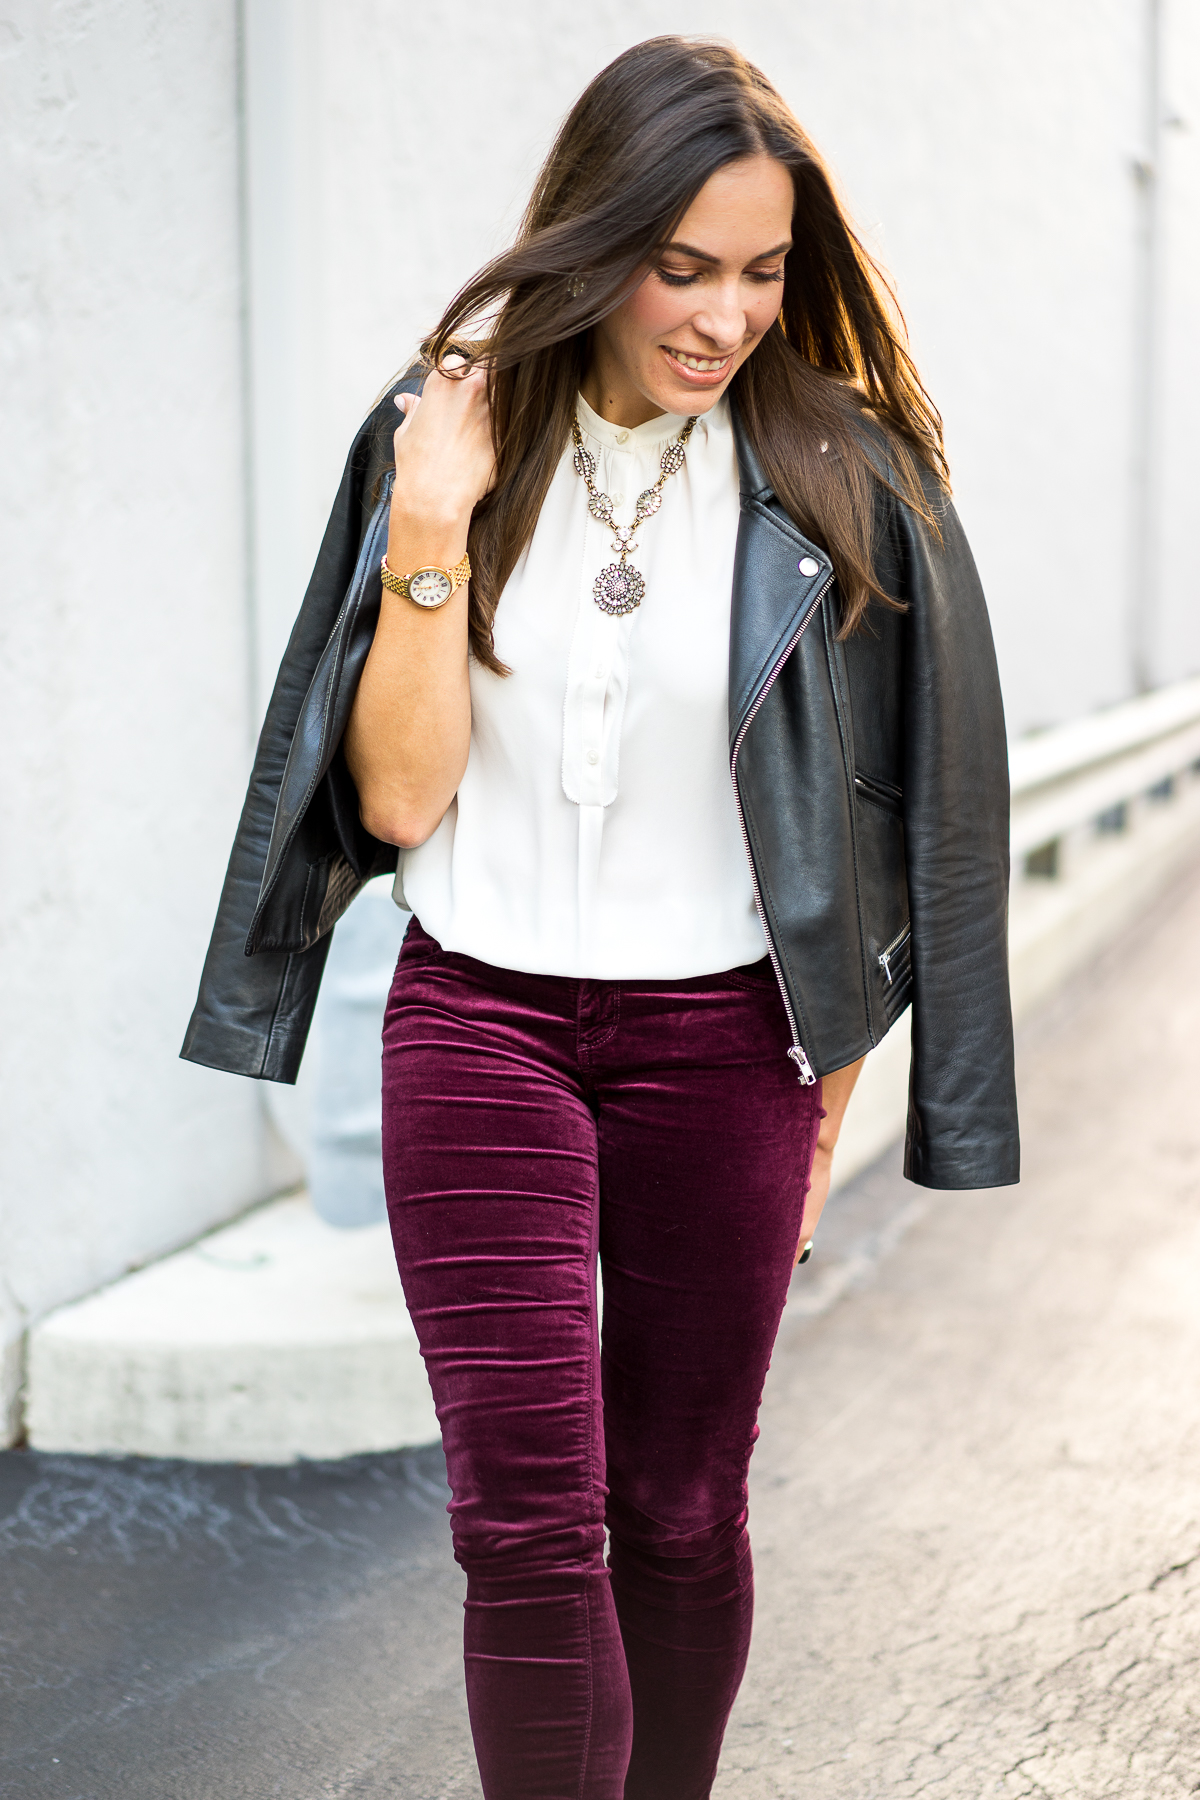 Leggings can be a tricky article of clothing to style. But given how comfortable and cool they have the potential of being, we'd say that putting a little extra thought into your legging look is worth the effort, and that includes considering what not to wear with leggings.